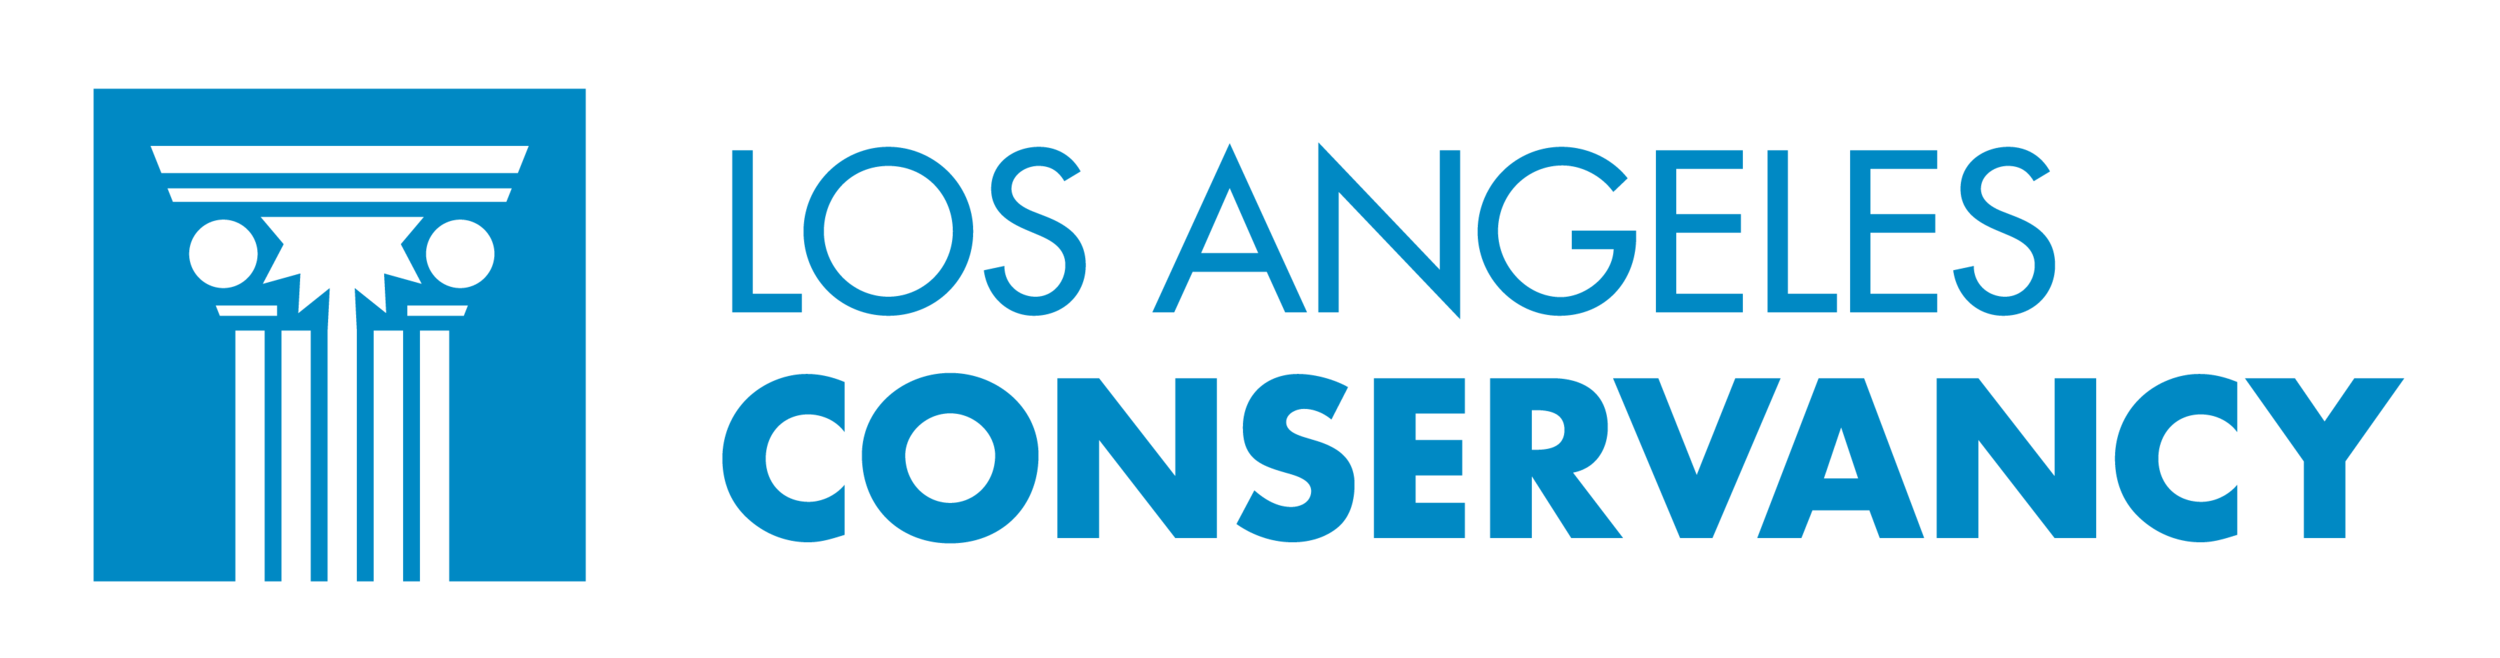 los-angeles-conservancy.png